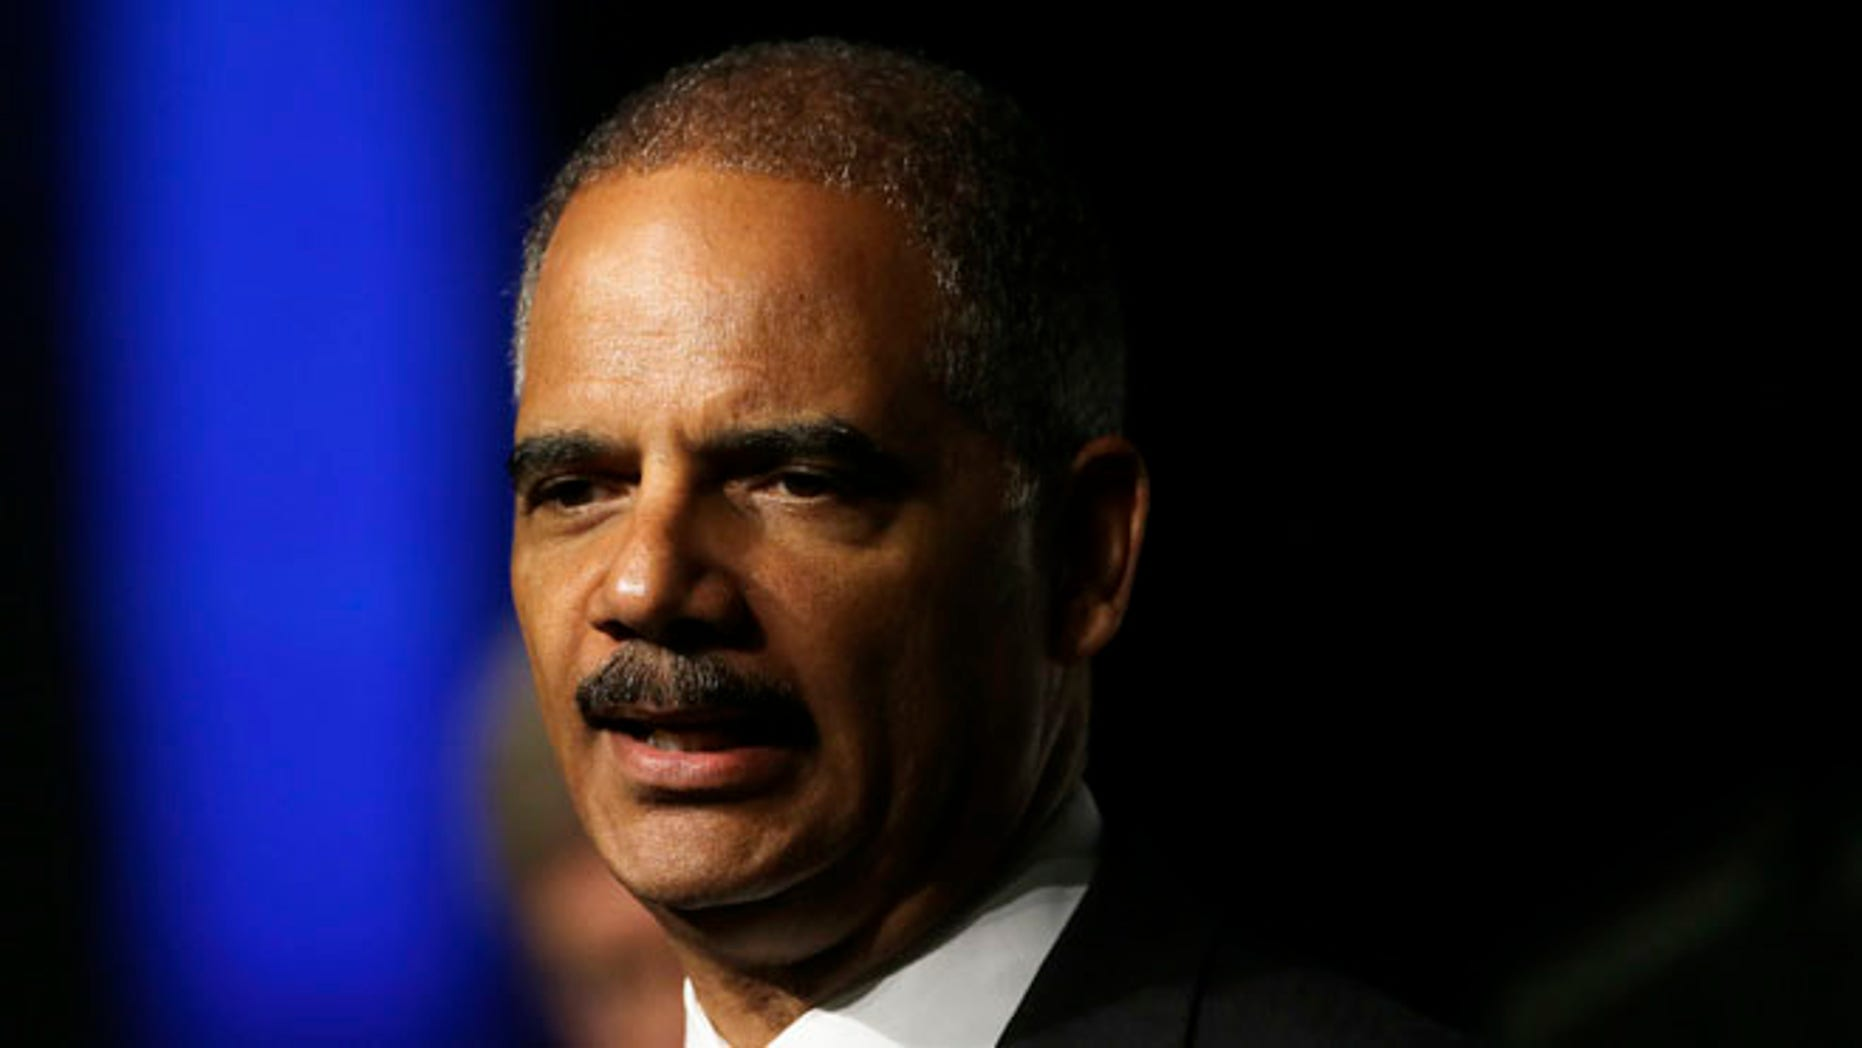 Aug. 12, 2013: Attorney General Eric Holder speaks to the American Bar Association Annual meeting.